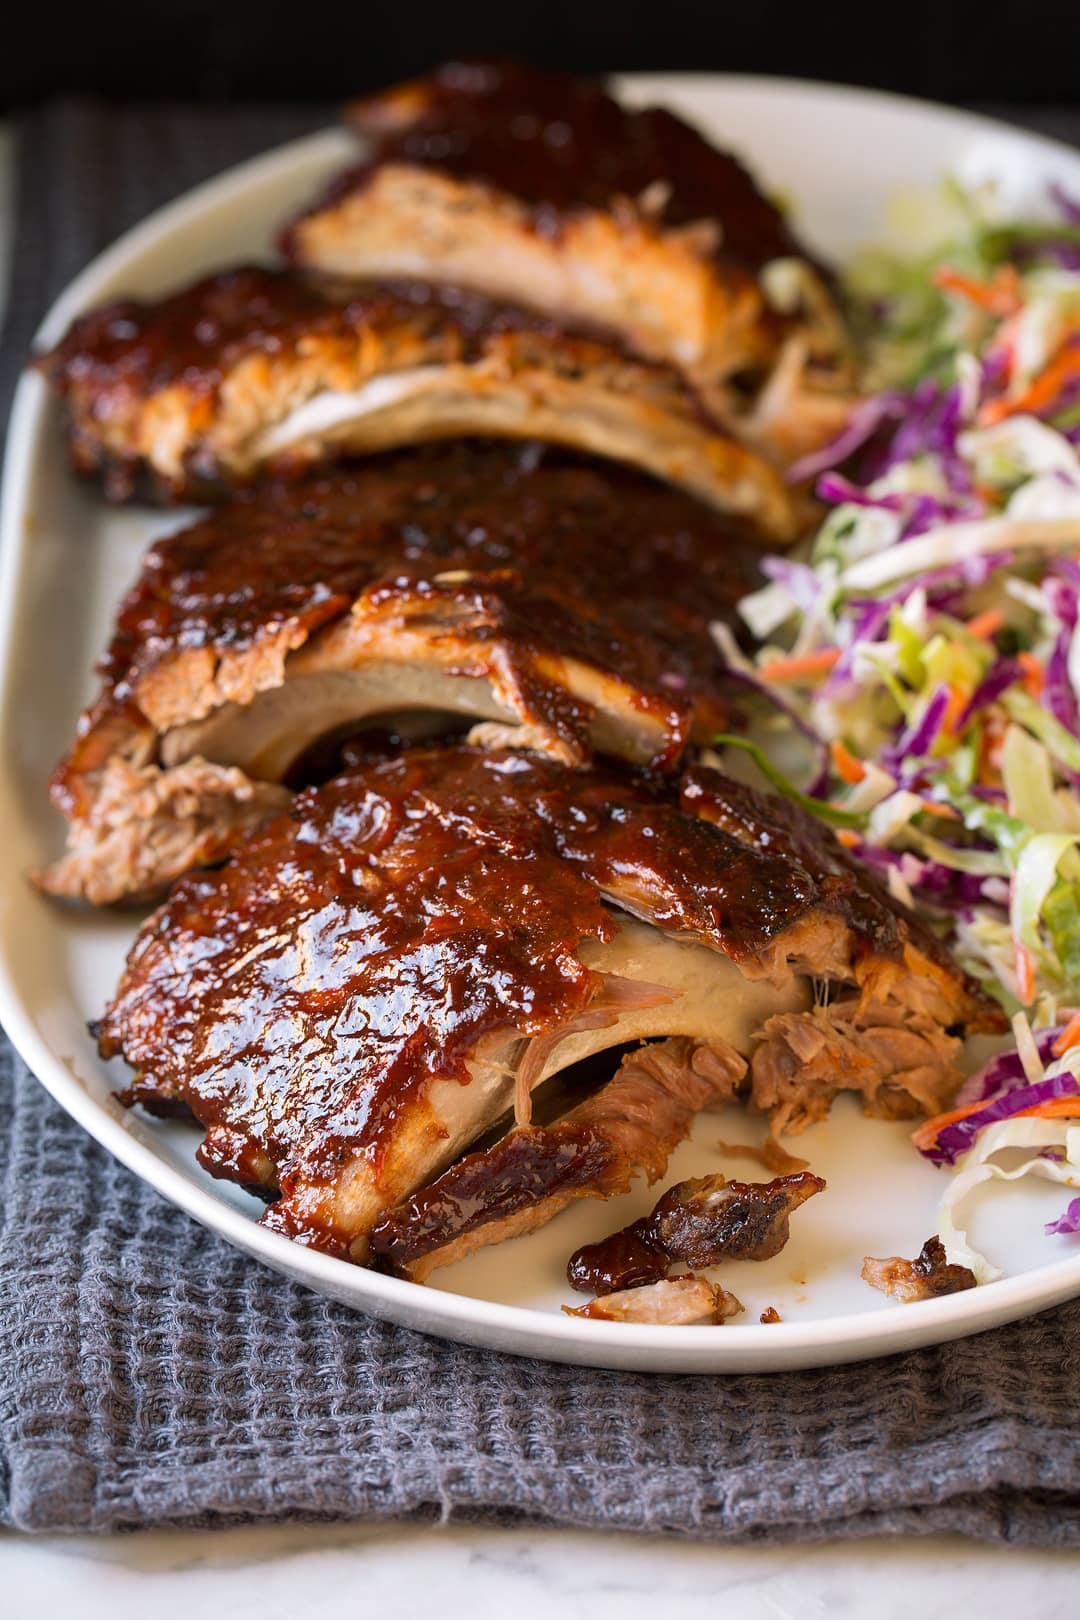 Slow Cooker Ribs with coleslaw on white plate